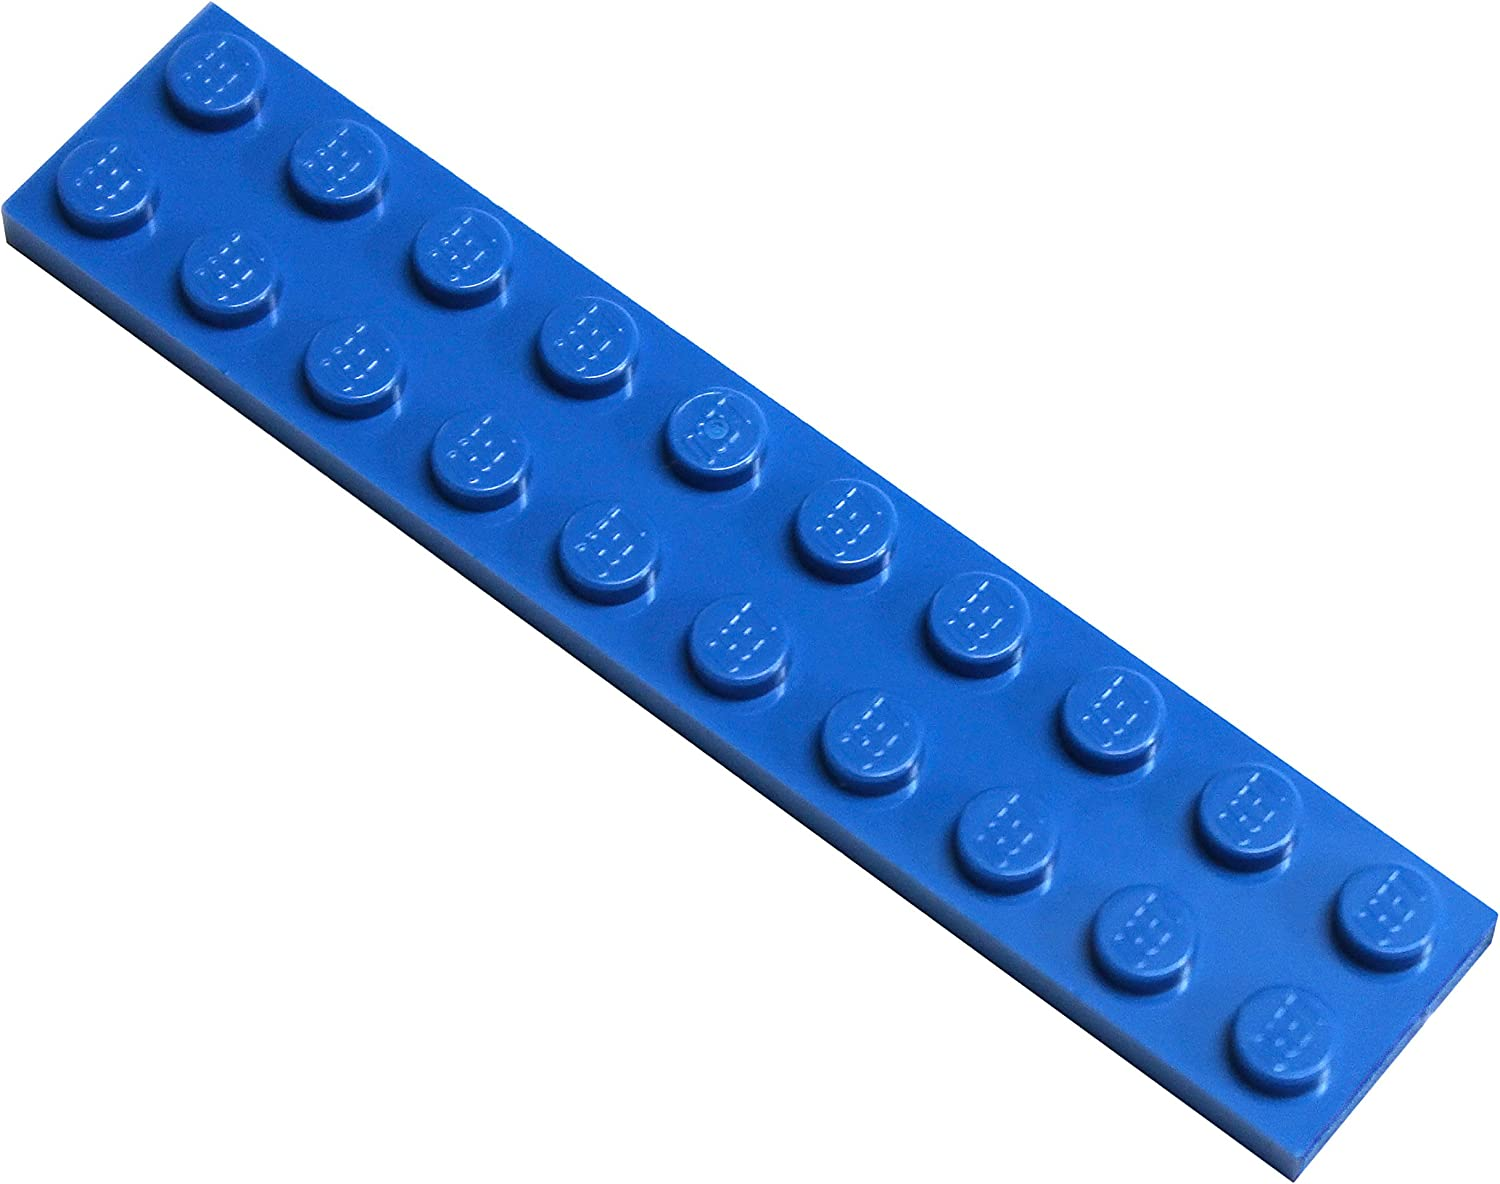 LEGO Parts and Pieces: Blue (Bright Blue) 2x10 Plate x50